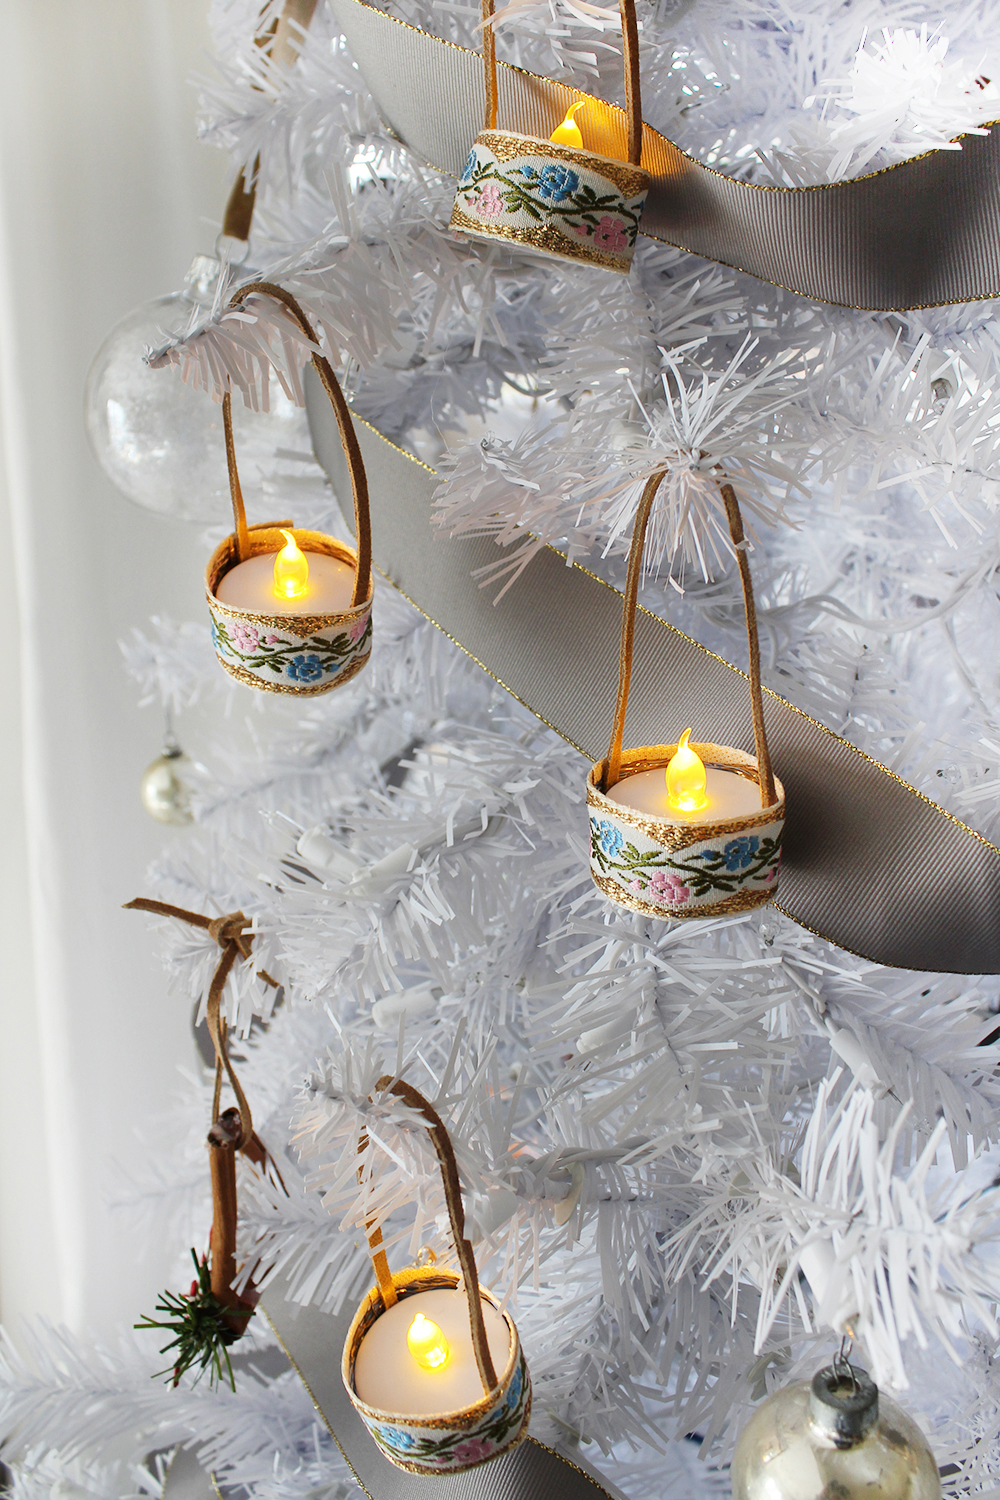 mini tealight ornaments are adorable and easy to make! #ChristmasDIY #Ornaments #HandmadeGiftIdea